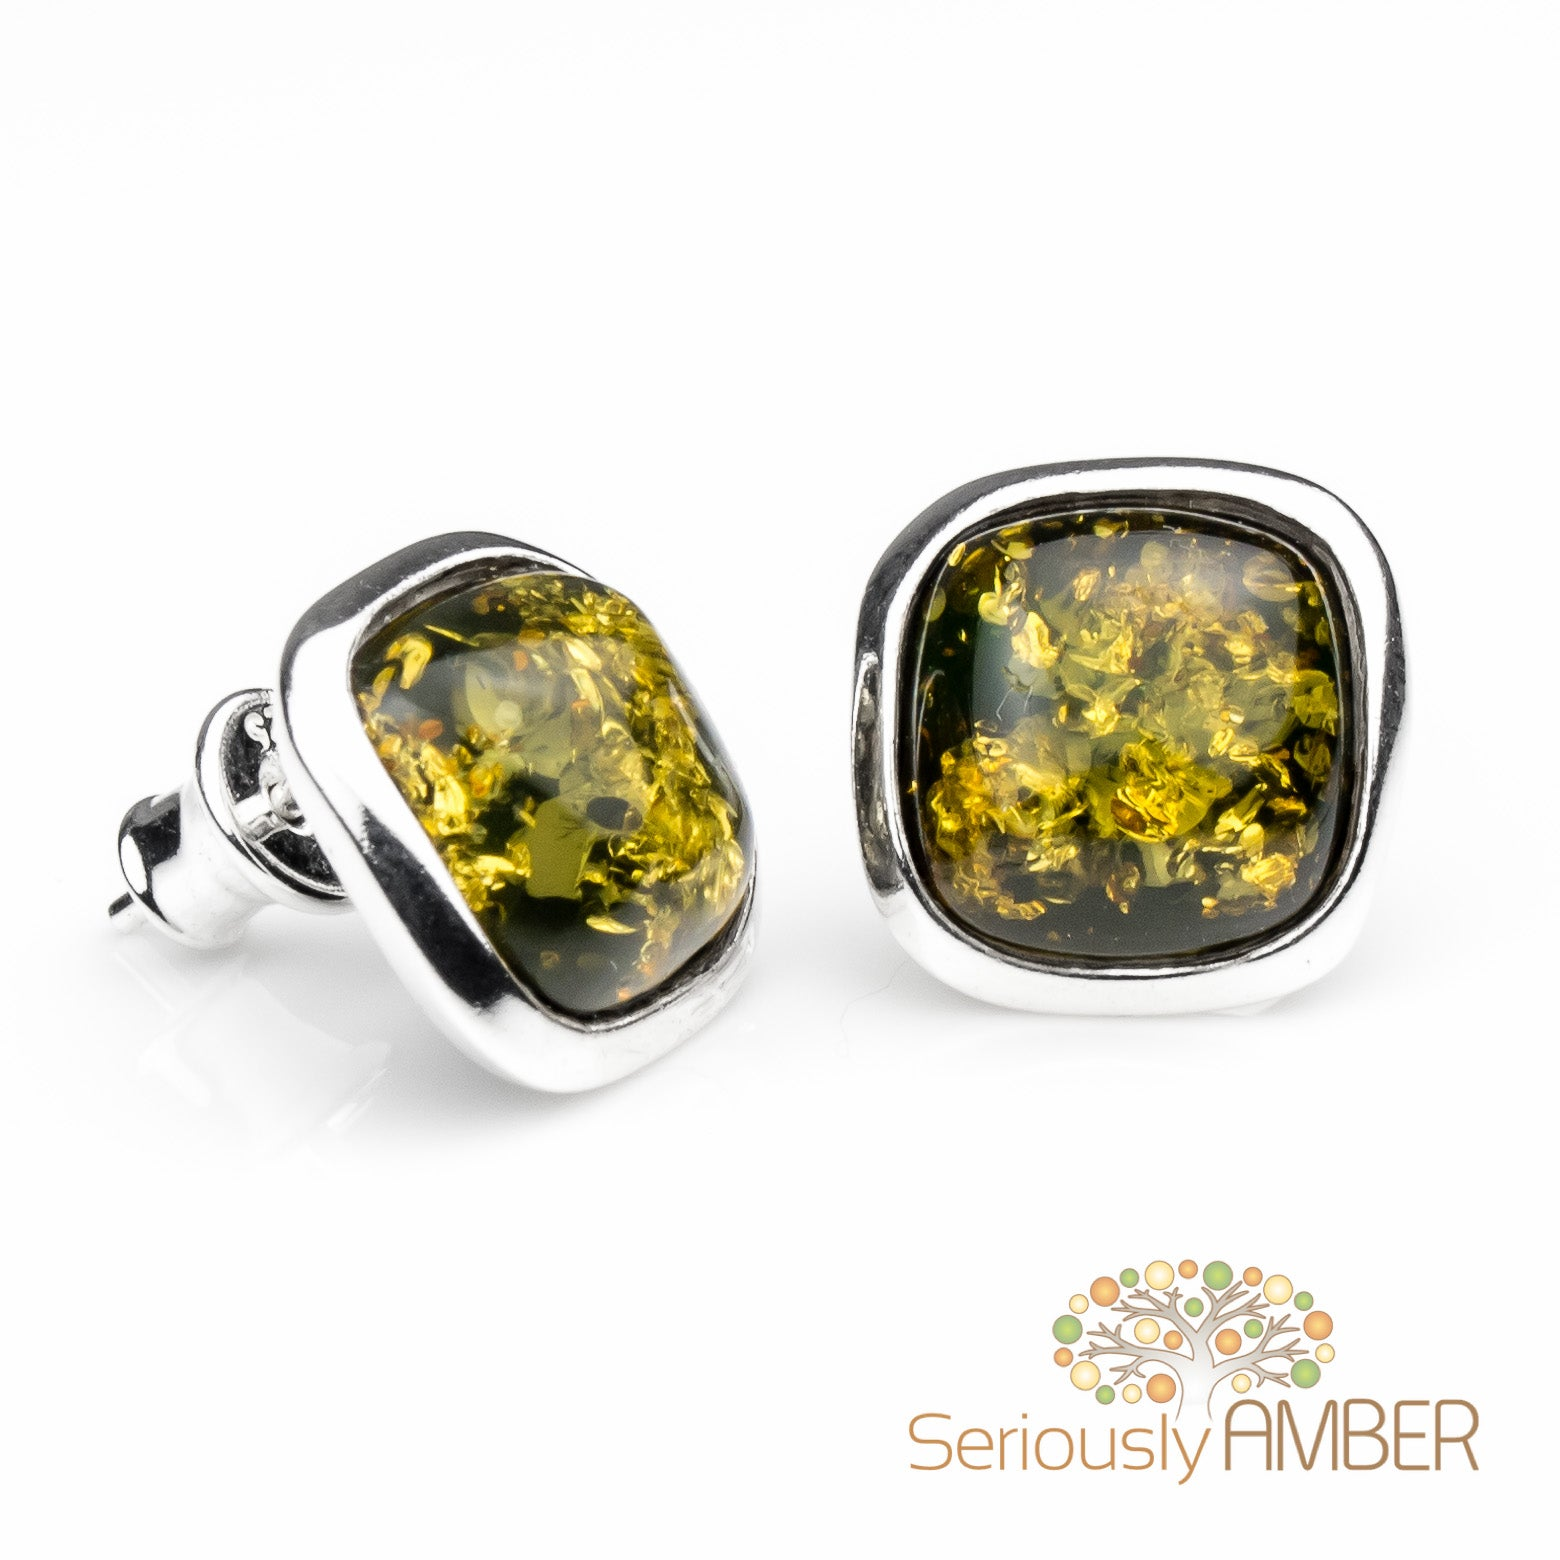 Green Amber Sterling Silver Stud Earrings JzLnAH5X